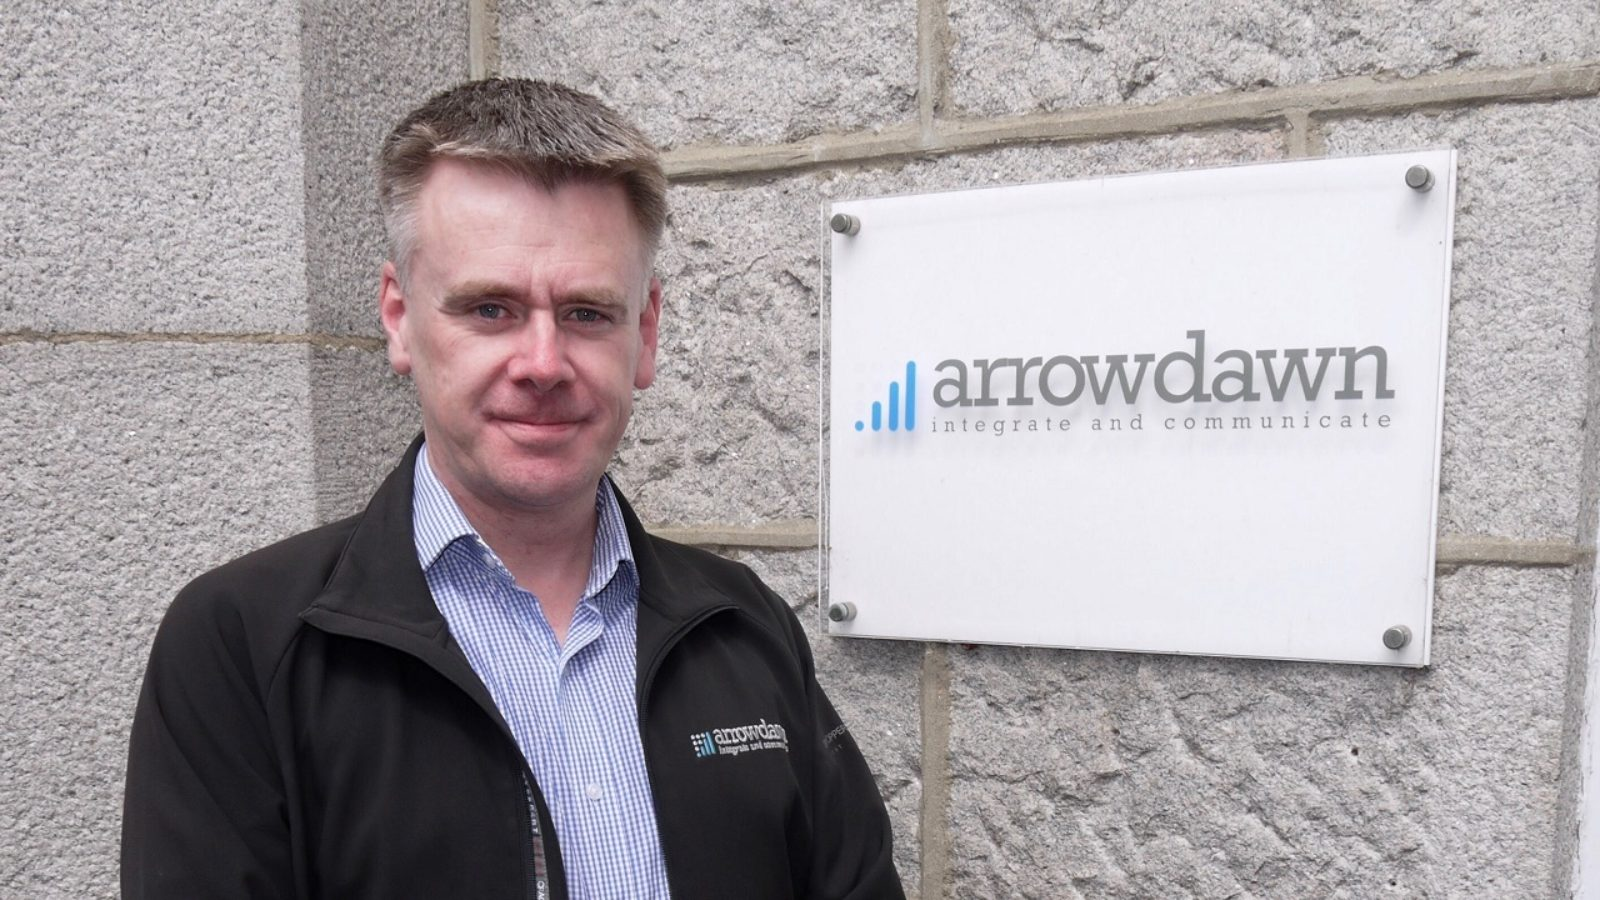 Contract wins for networks and communications specialist Arrowdawn